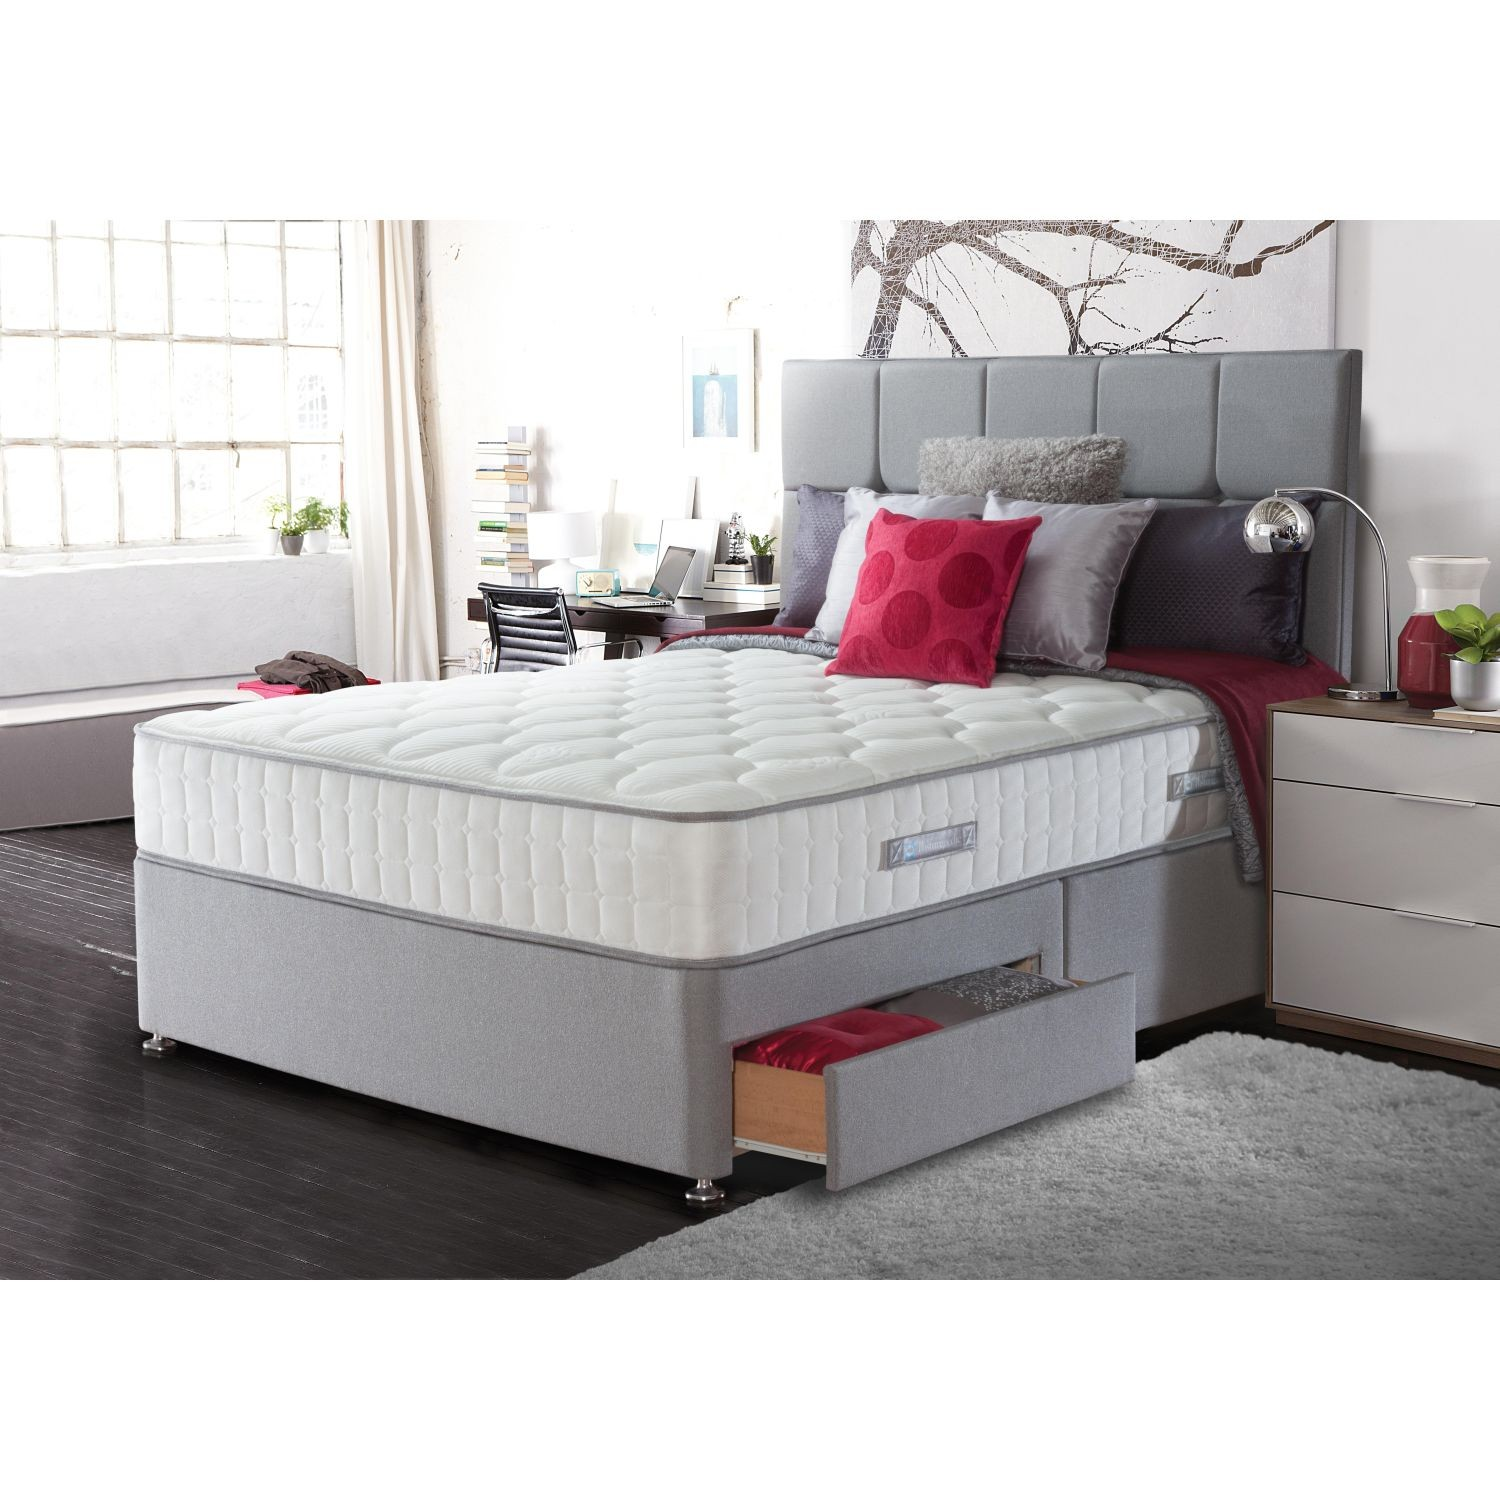 Sealy chloe four drawer divan set super king for Super king divan set